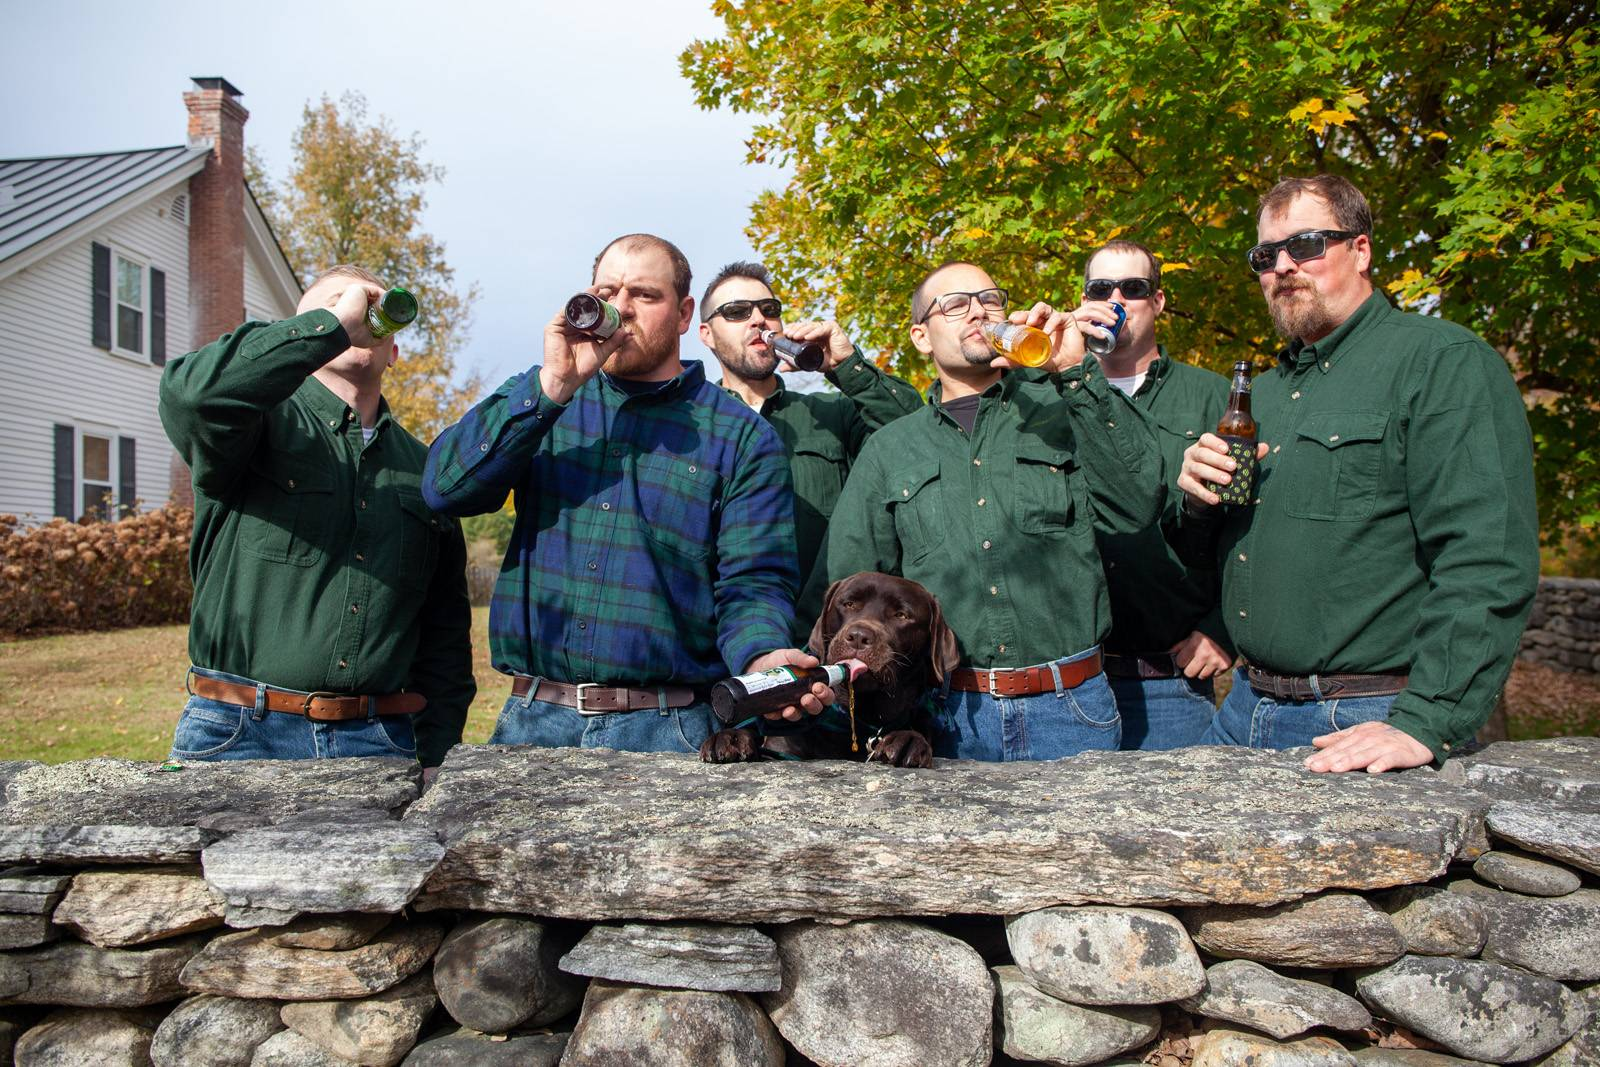 Groomsmen share a beer with groom's dog on wedding day